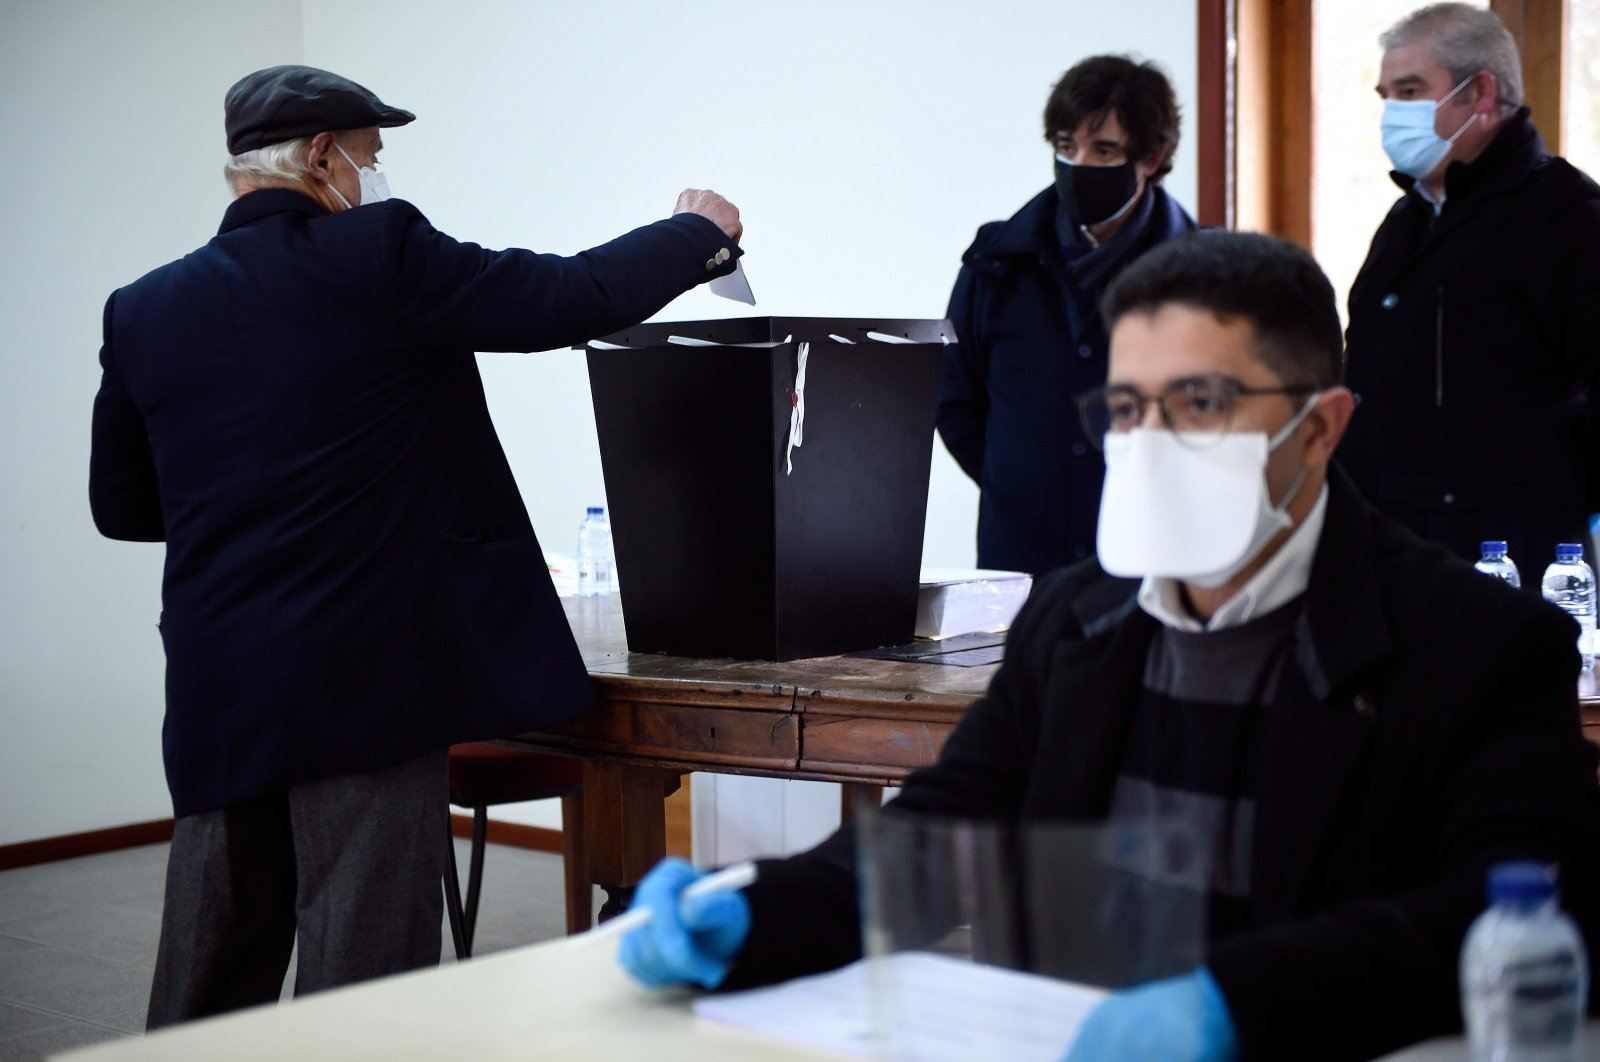 A man casts his ballot for the Portuguese presidential election at a polling station in Celorico de Basto on Jan. 24, 2021. (AFP Photo)